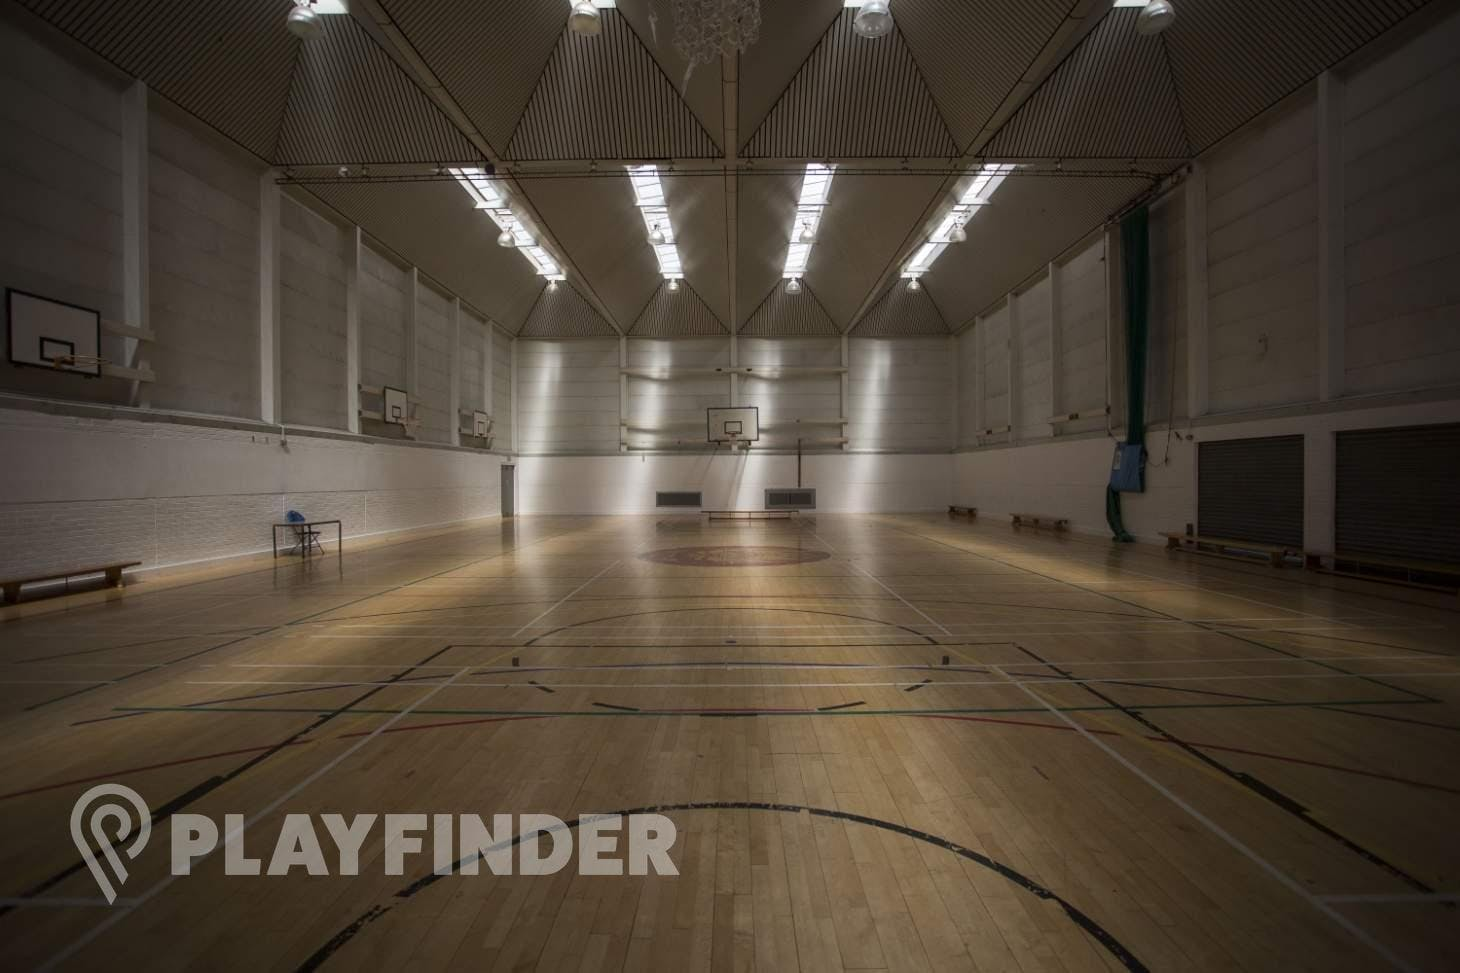 Acland Burghley School Indoor netball court